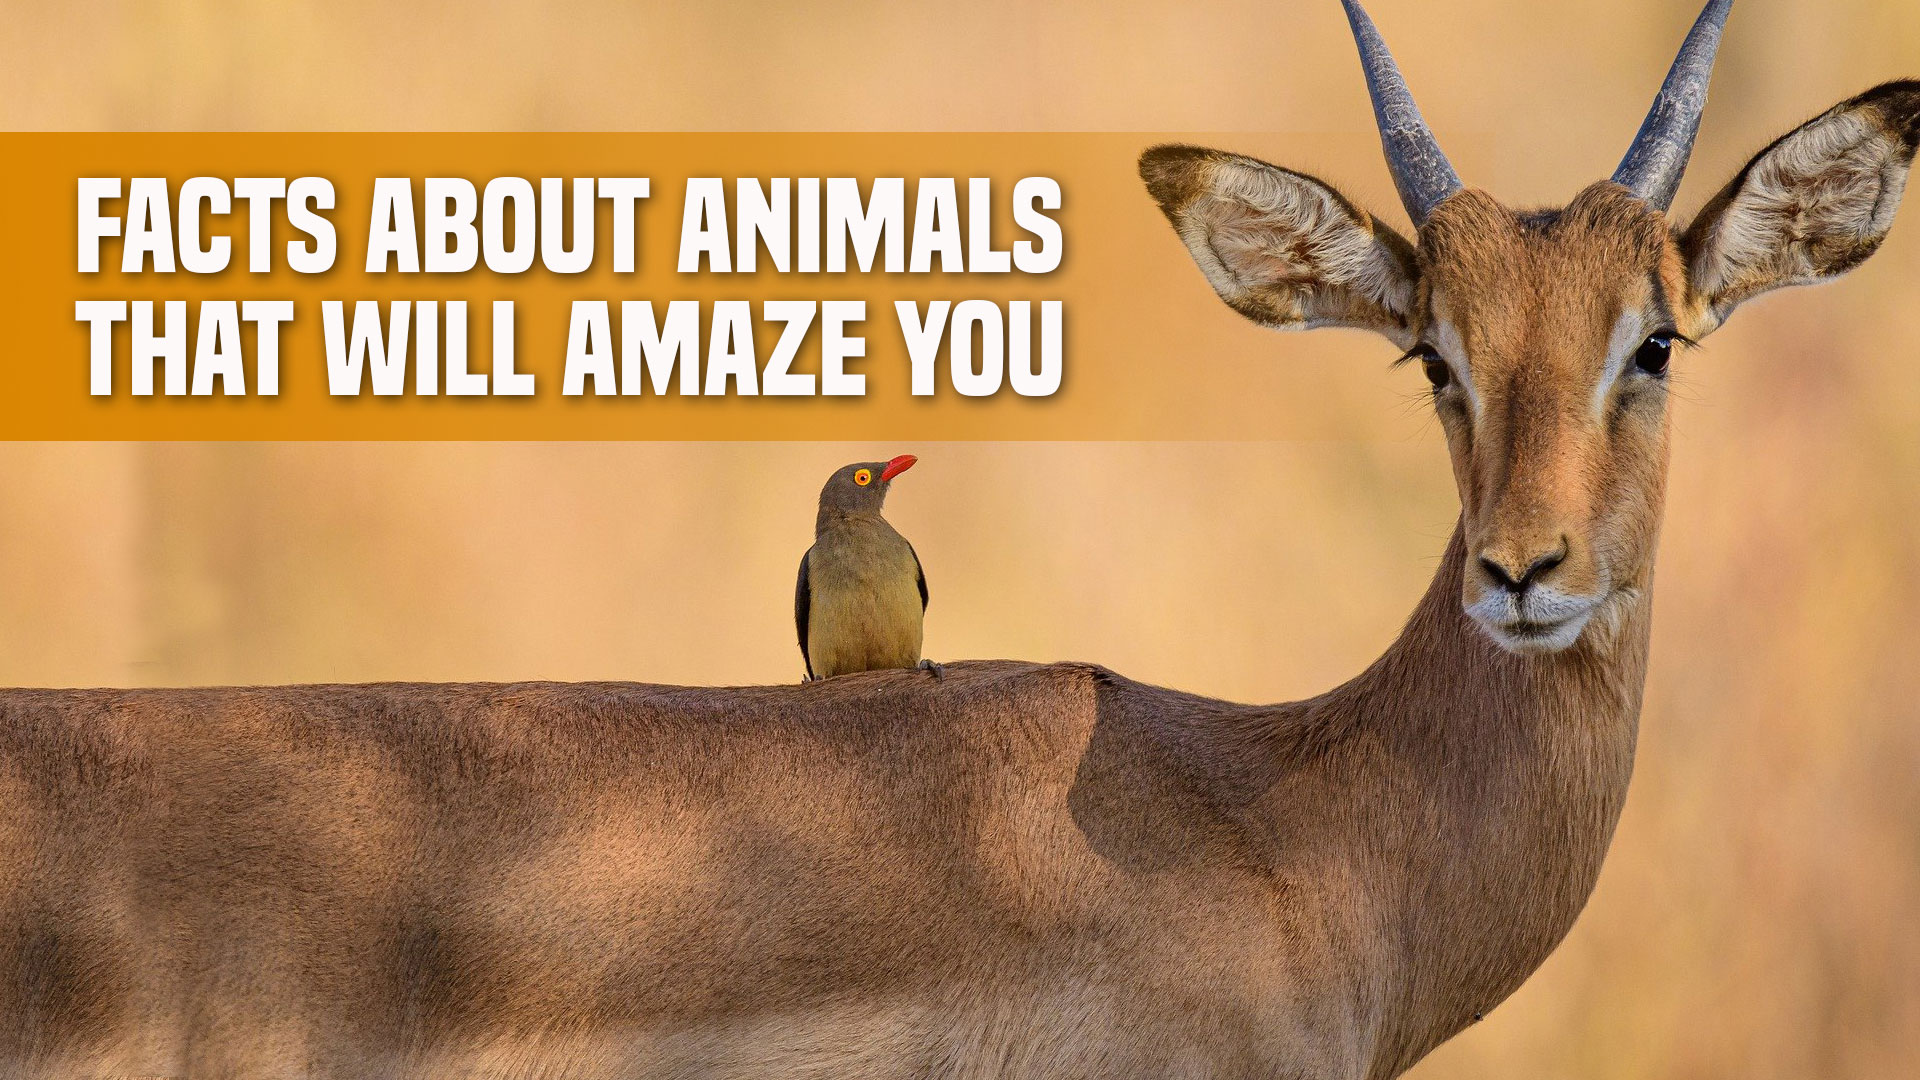 Facts About Animals That Will Amaze You